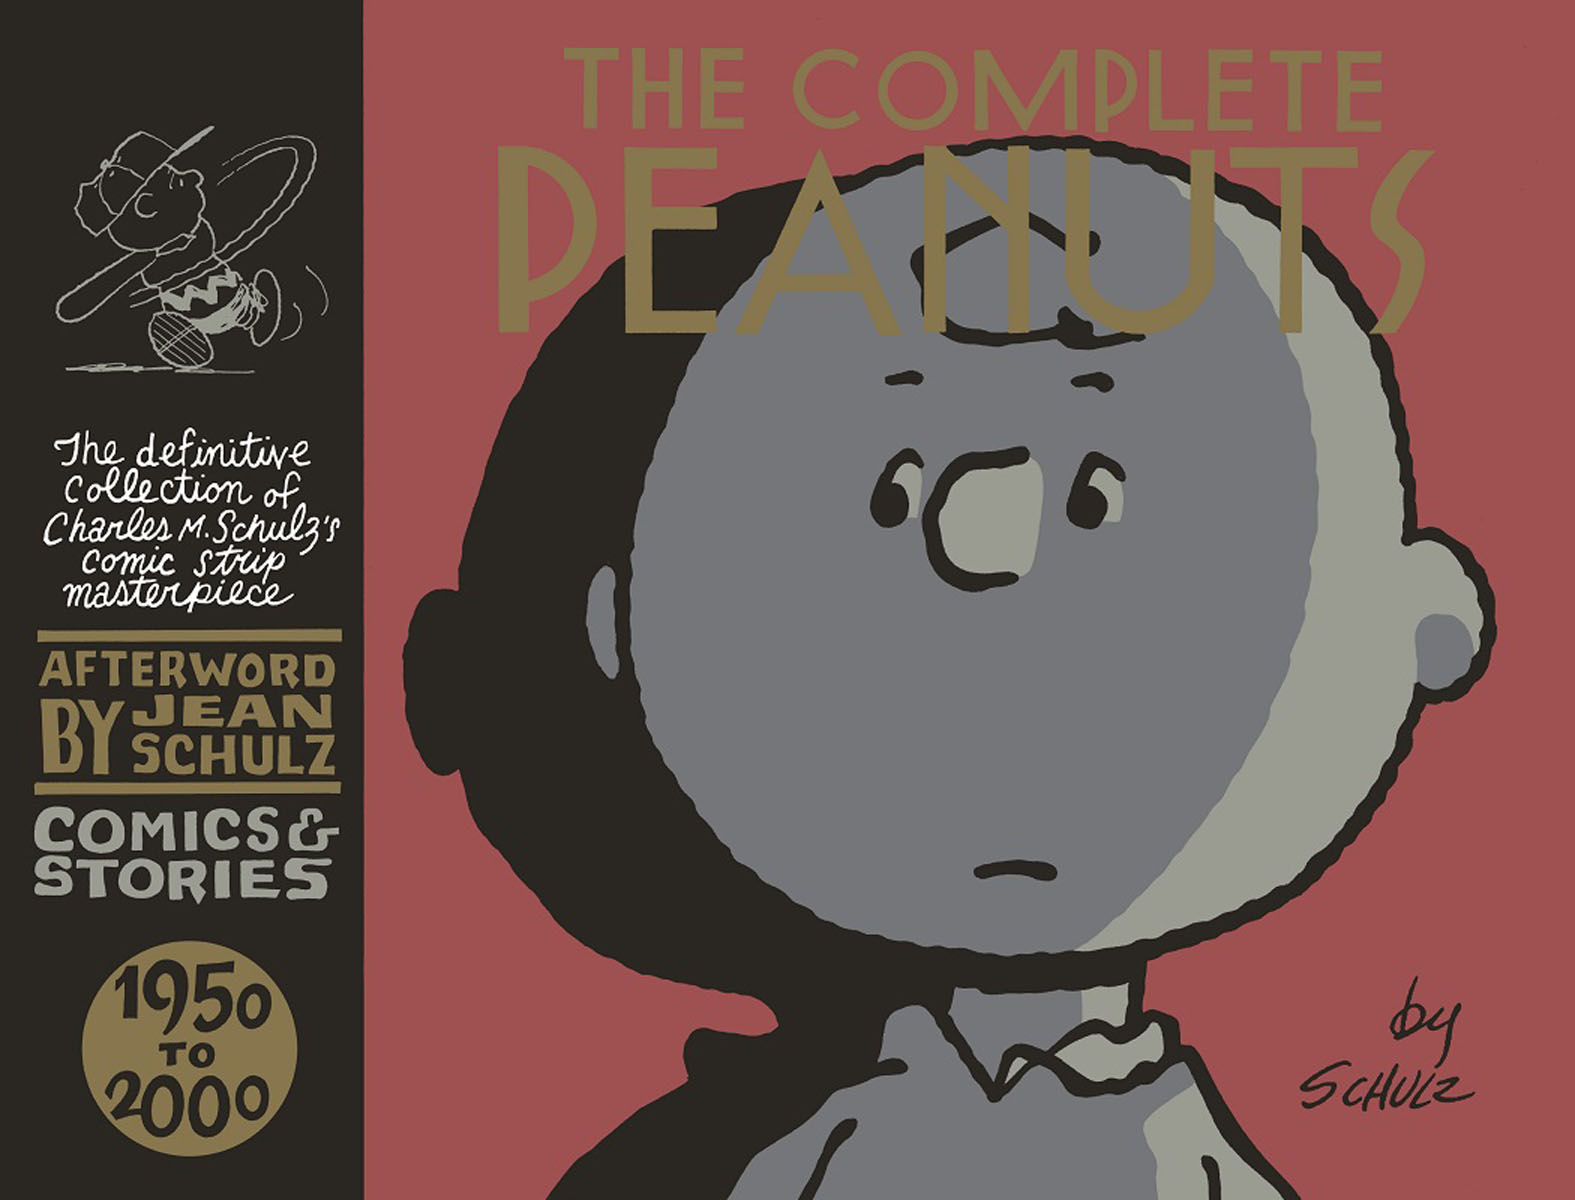 The Complete Peanuts: Comics & Stories Vol. 26 the complete guide to self publishing comics how to create and sell comic books manga and webcomics